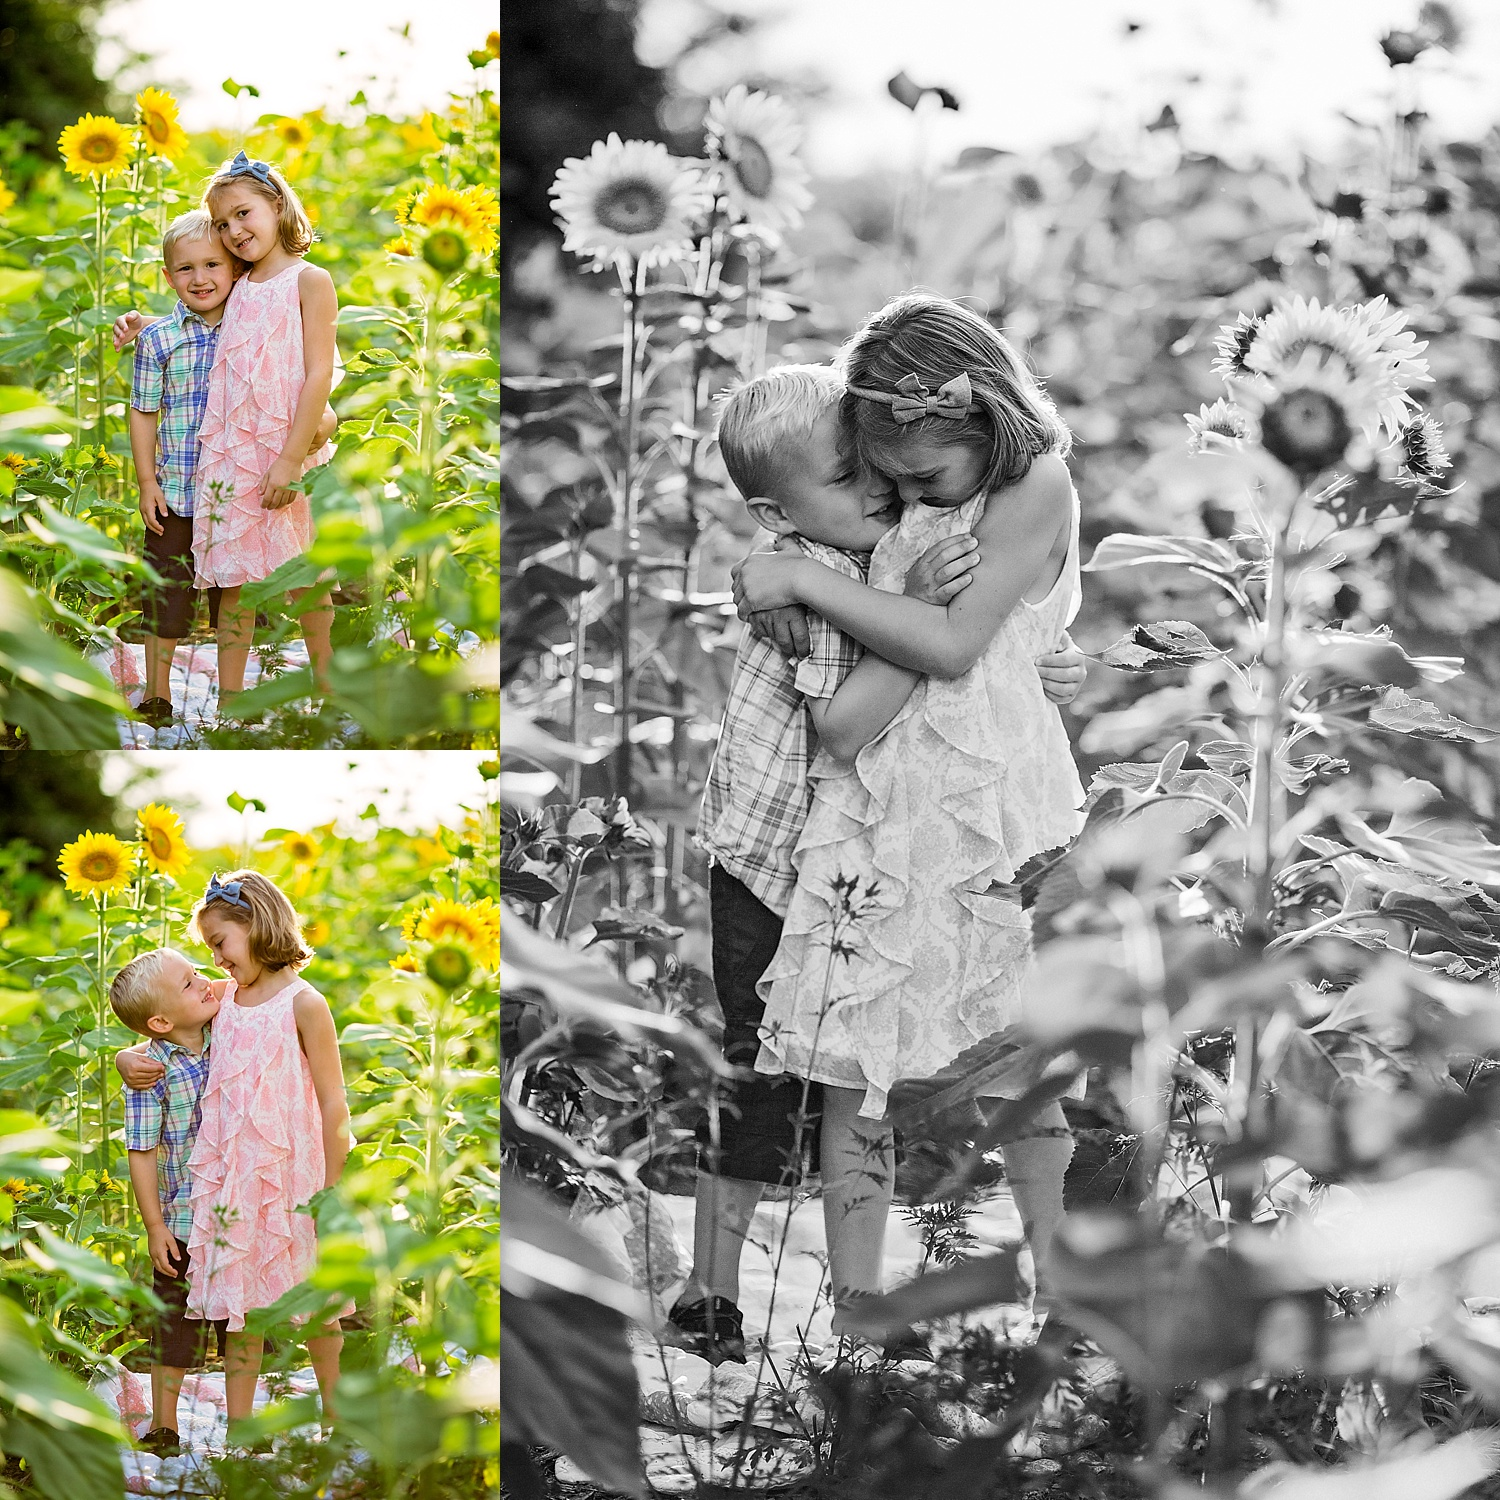 Berks County Pennsylvania Blue Marsh Lake Sunflower Field Photoshoot Photographer